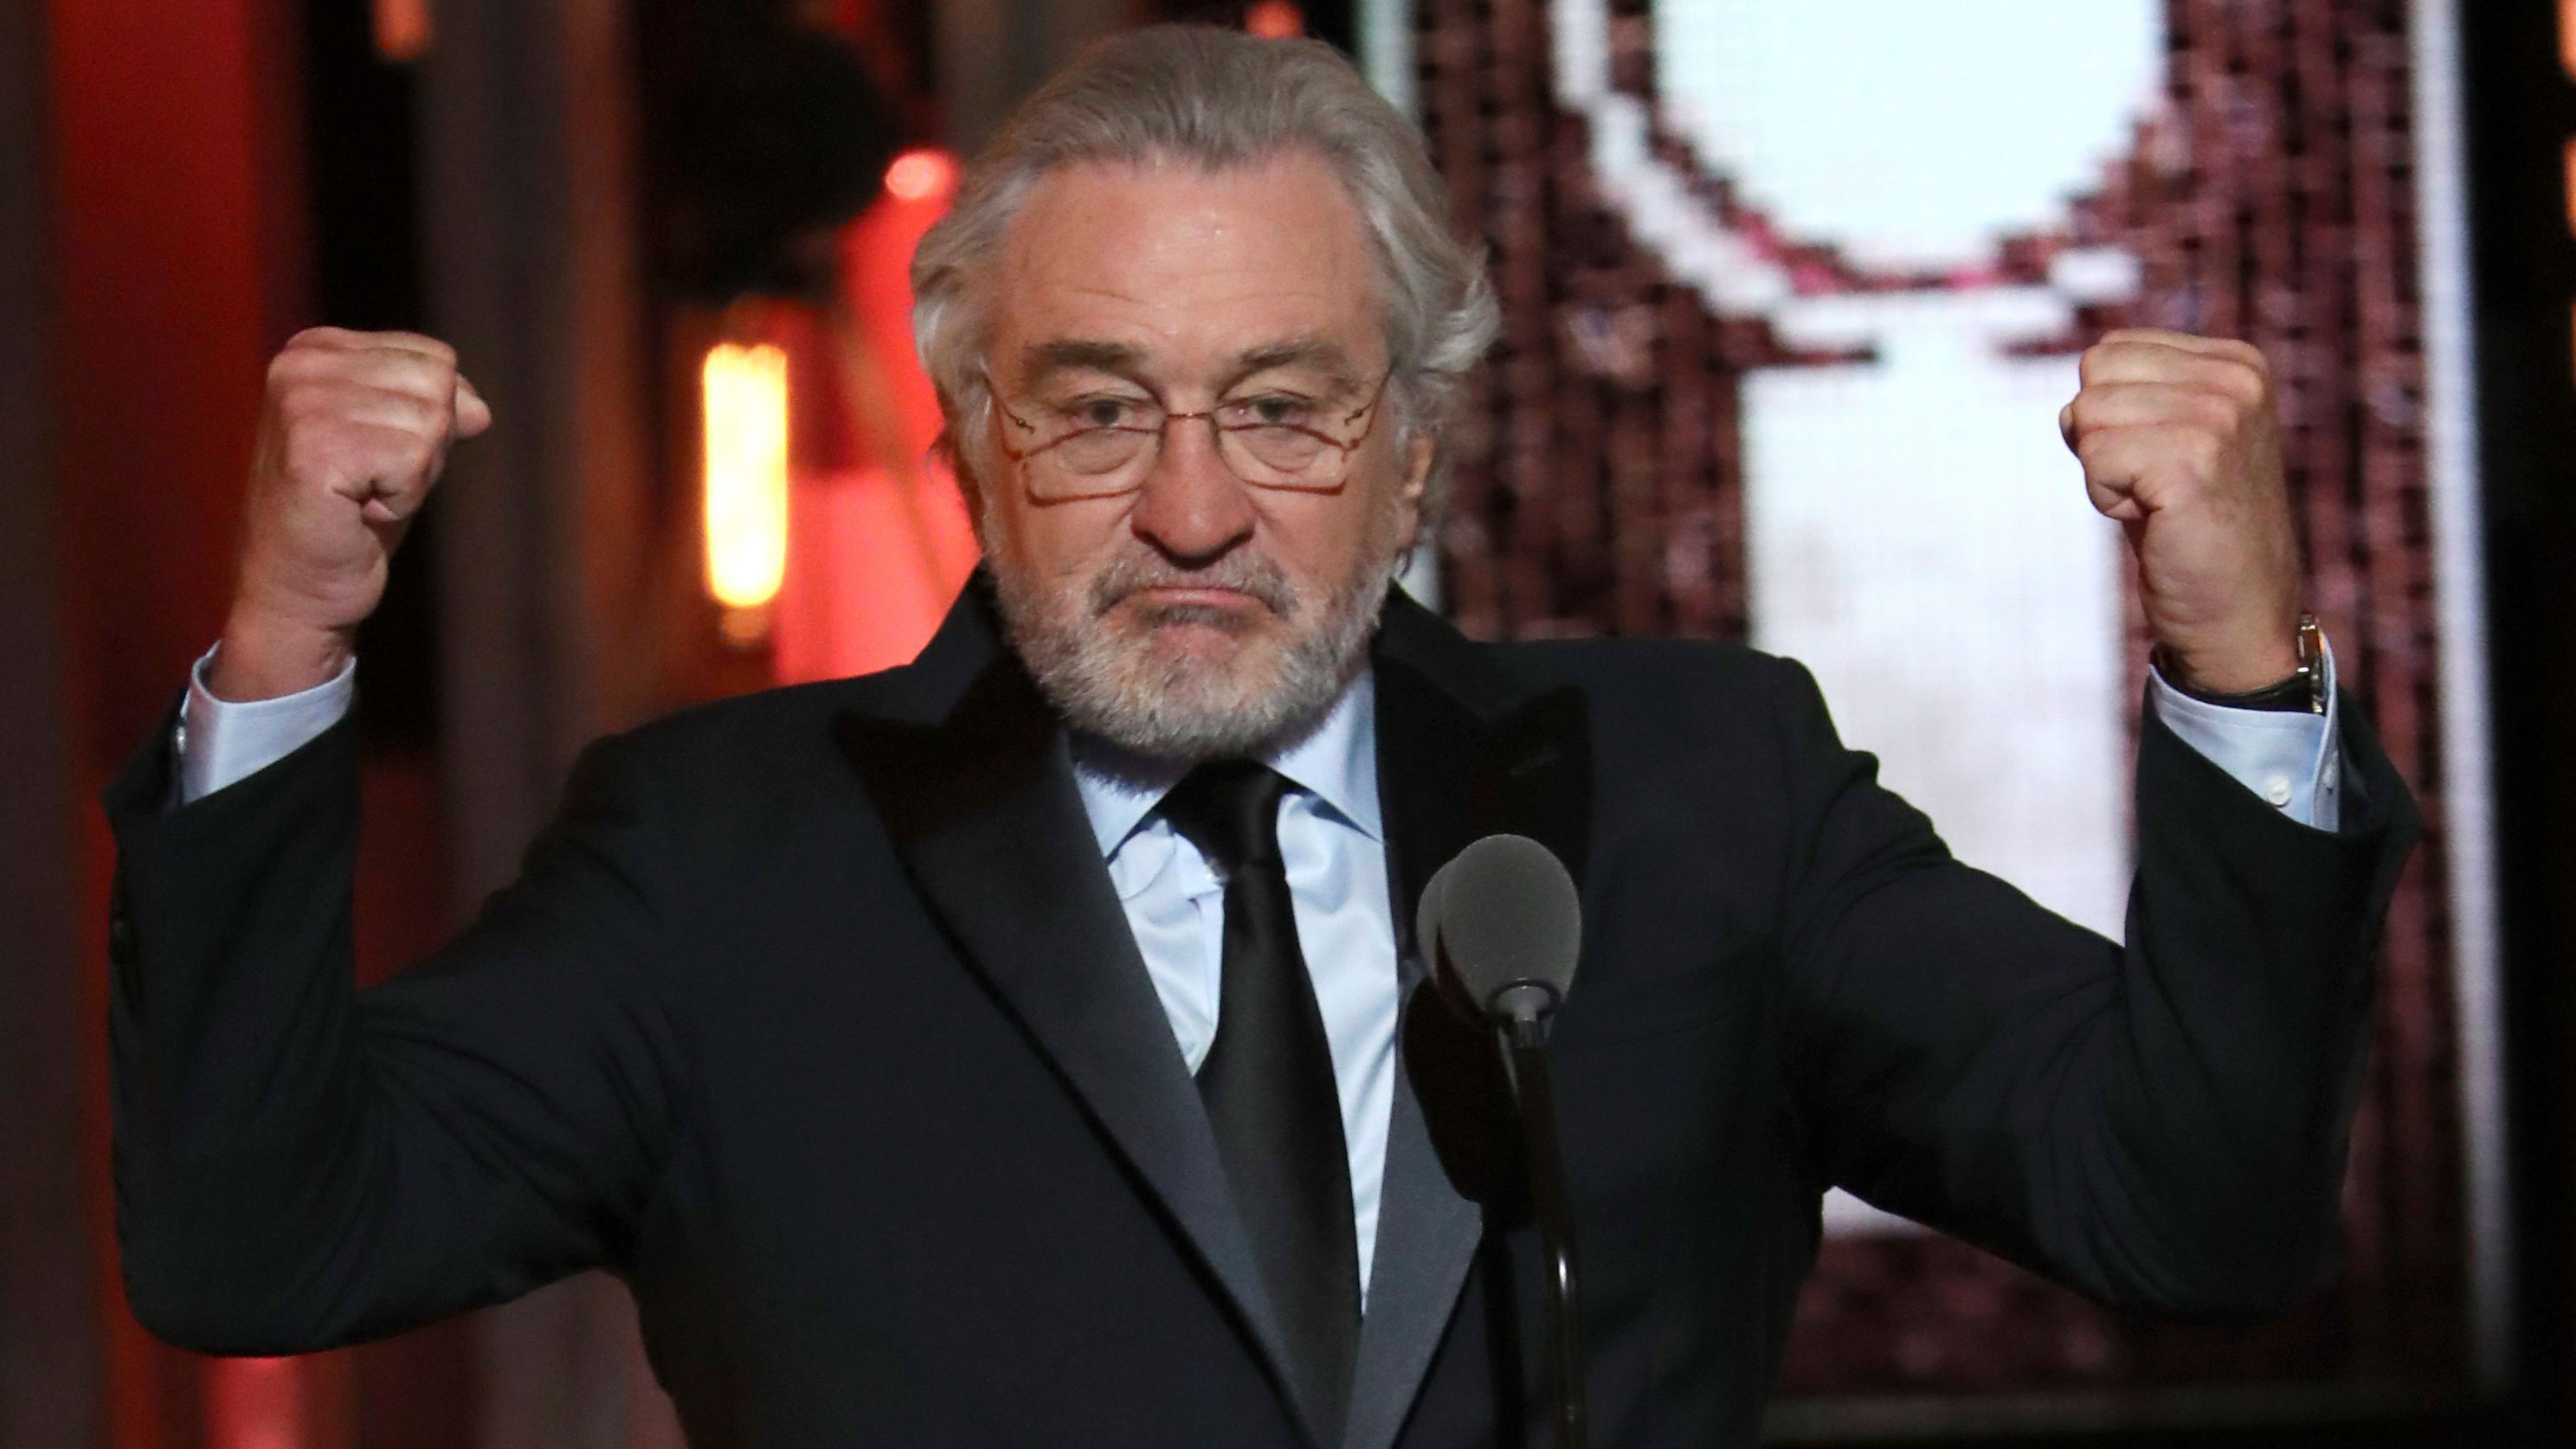 Robert De Niro gets censored for saying 'F- Trump' at Tony Awards